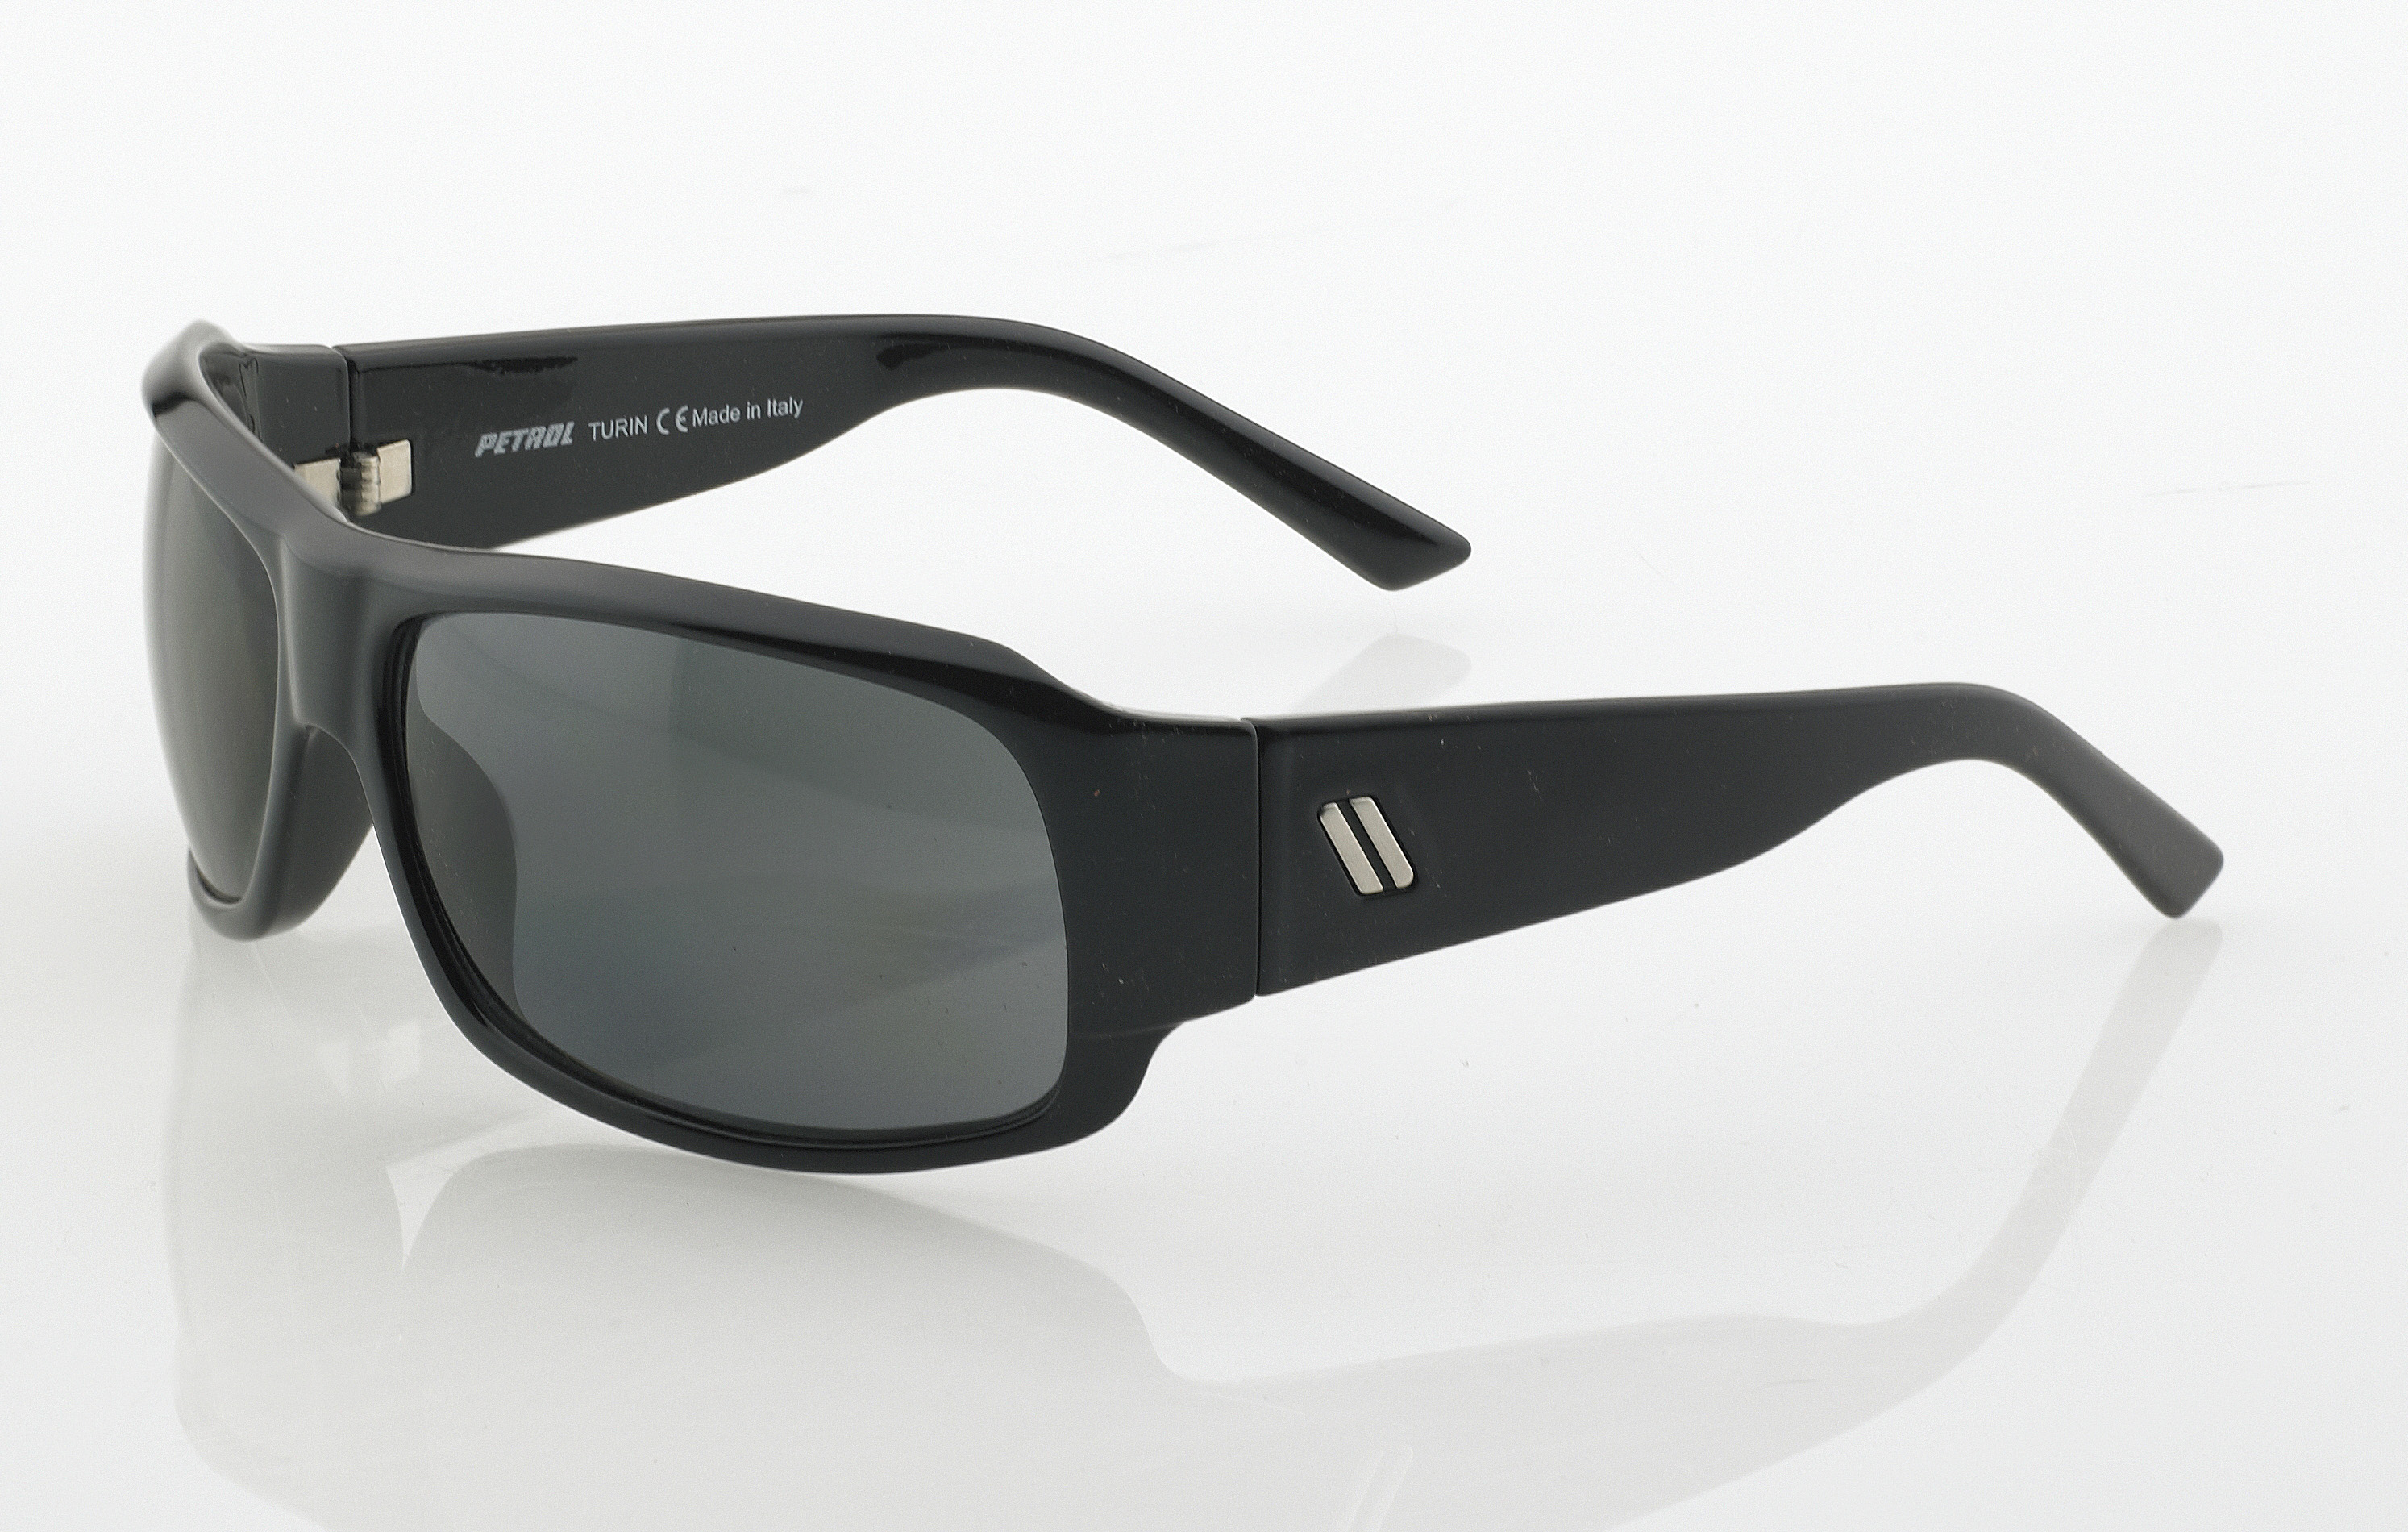 polarized glasses  Petrol Eyewear Introduces a Trio of New Polarized Driving Sunglasses